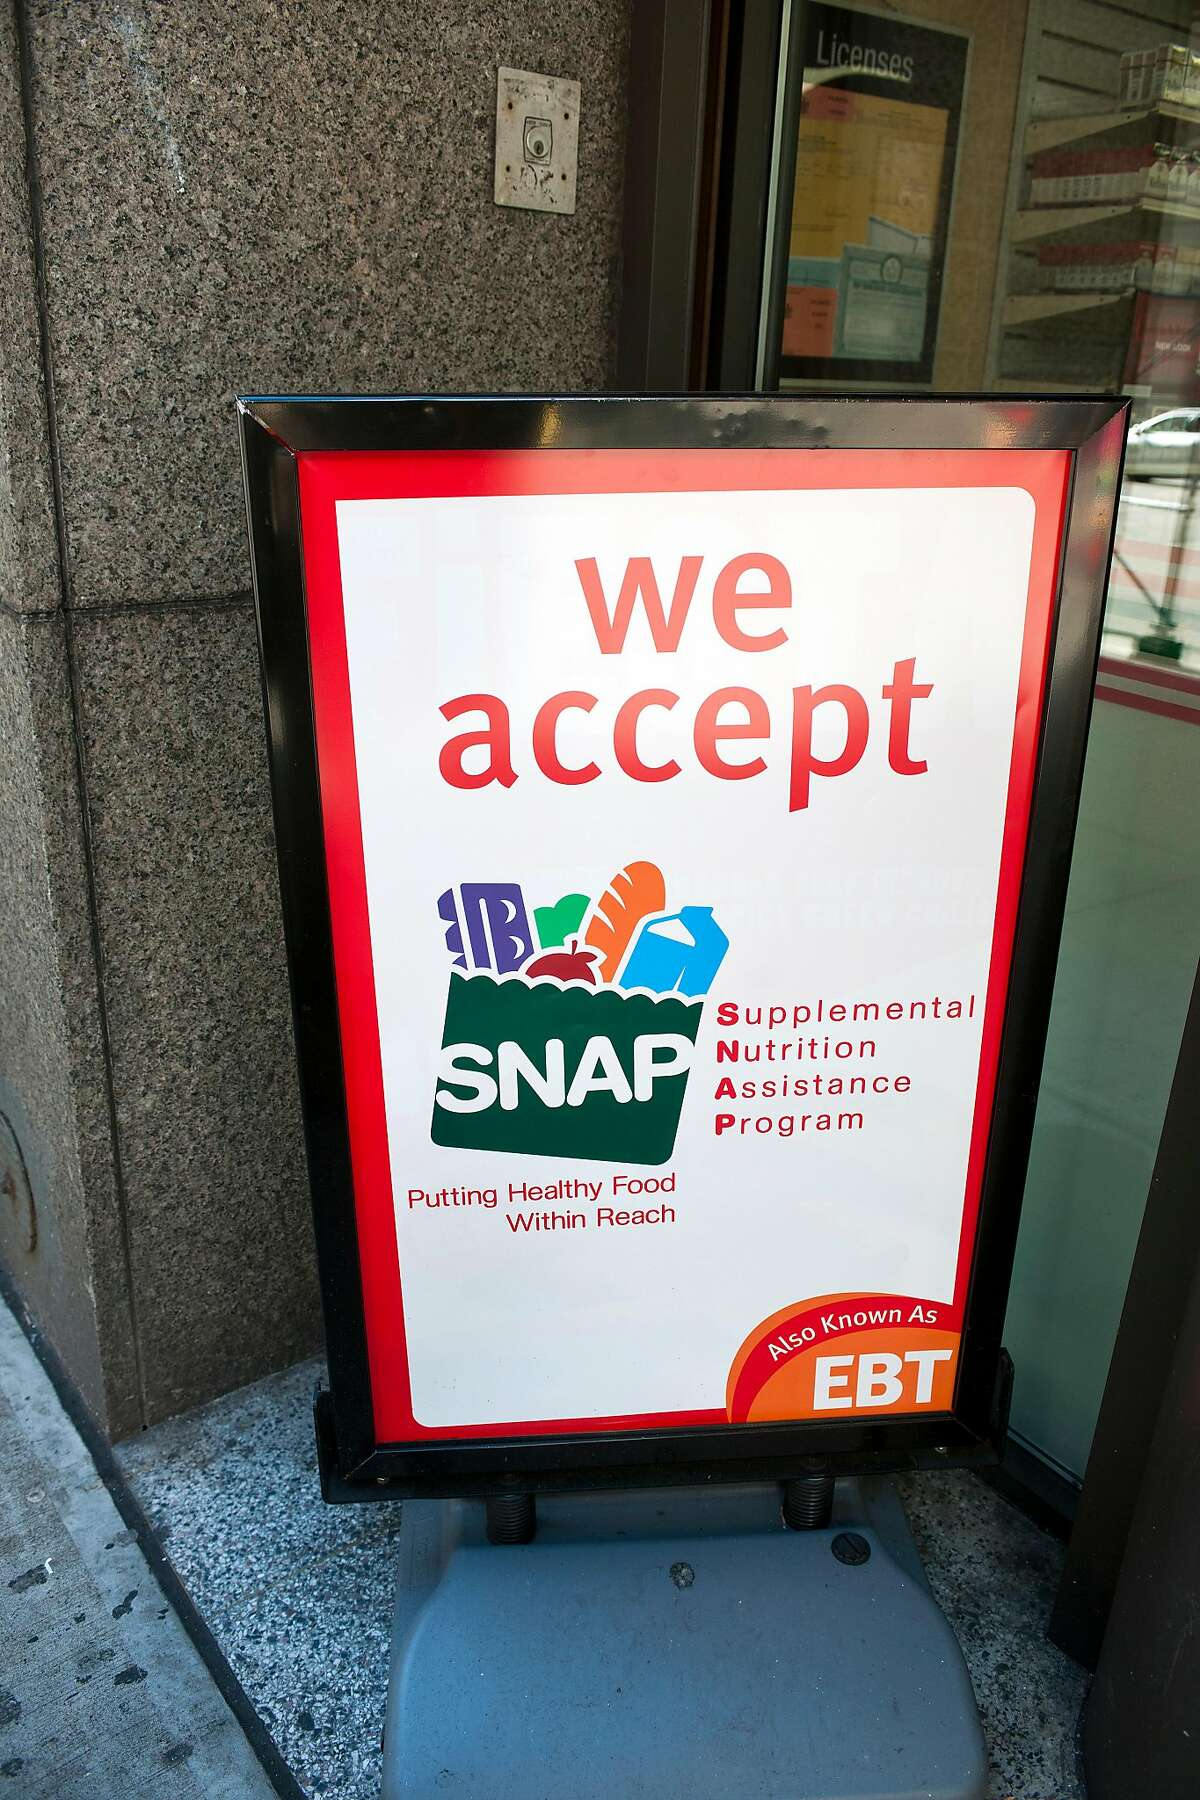 The change, advocates say, is part of the Trump administration's yearslong efforts to reduce benefits and housing subsidies, while trying to expand the work requirements needed to qualify for Medicaid and food stamps, now known as SNAP. (Richard B. Levine/Sipa USA/TNS)